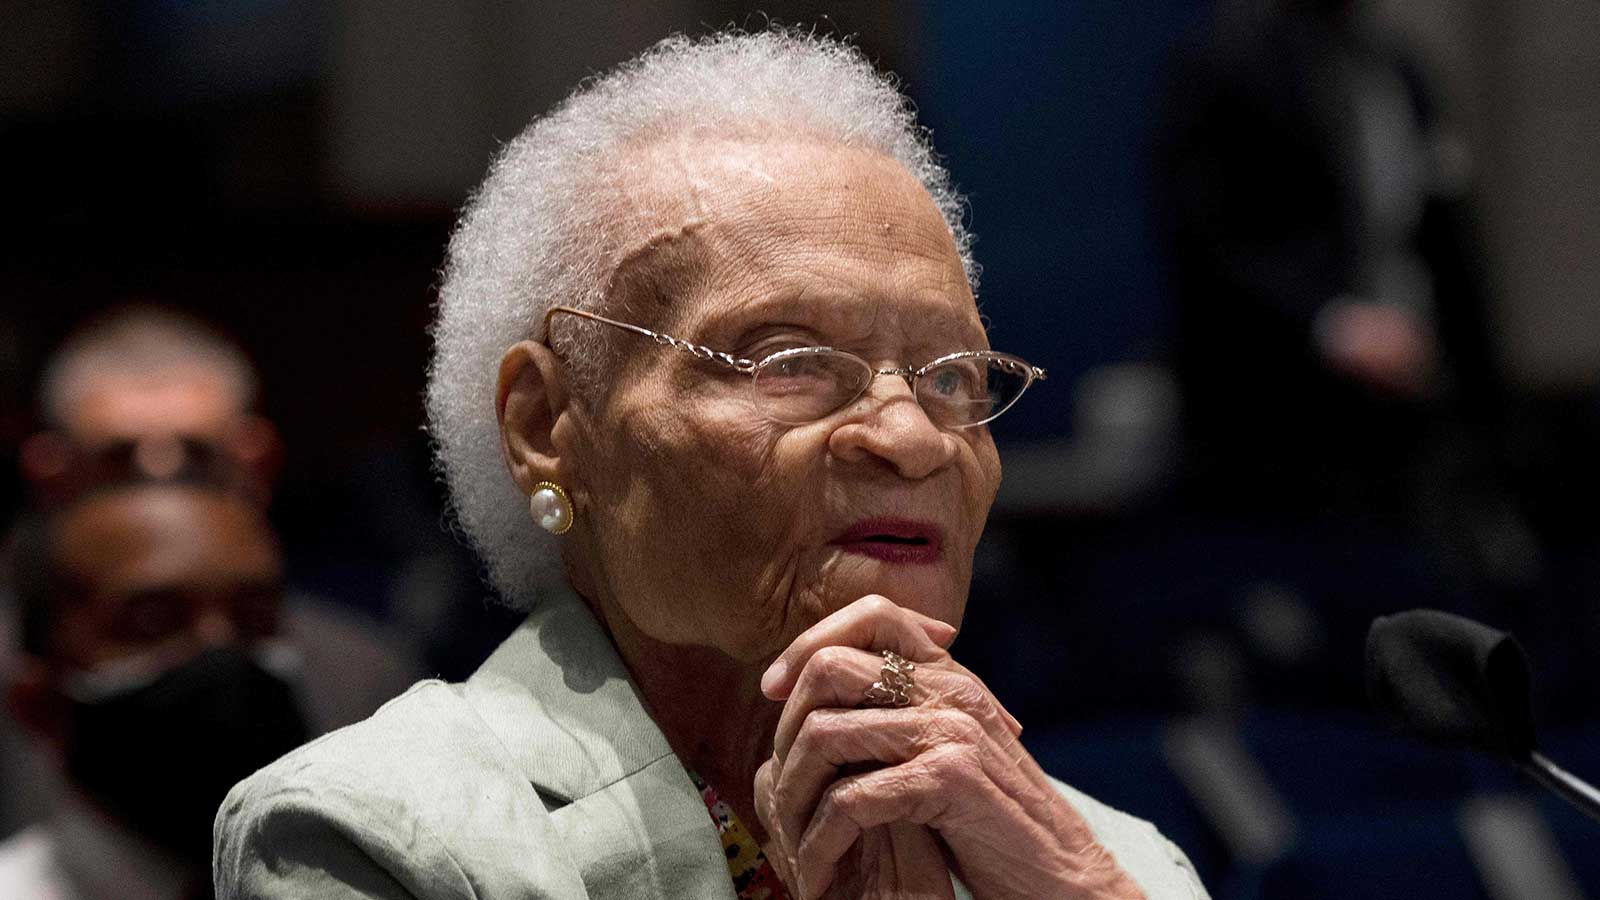 Viola Fletcher - The three remaining survivors of the 1921 Tulsa Race Massacre testified before Congress in Washington, D.C., asking leadership to deliver justice.